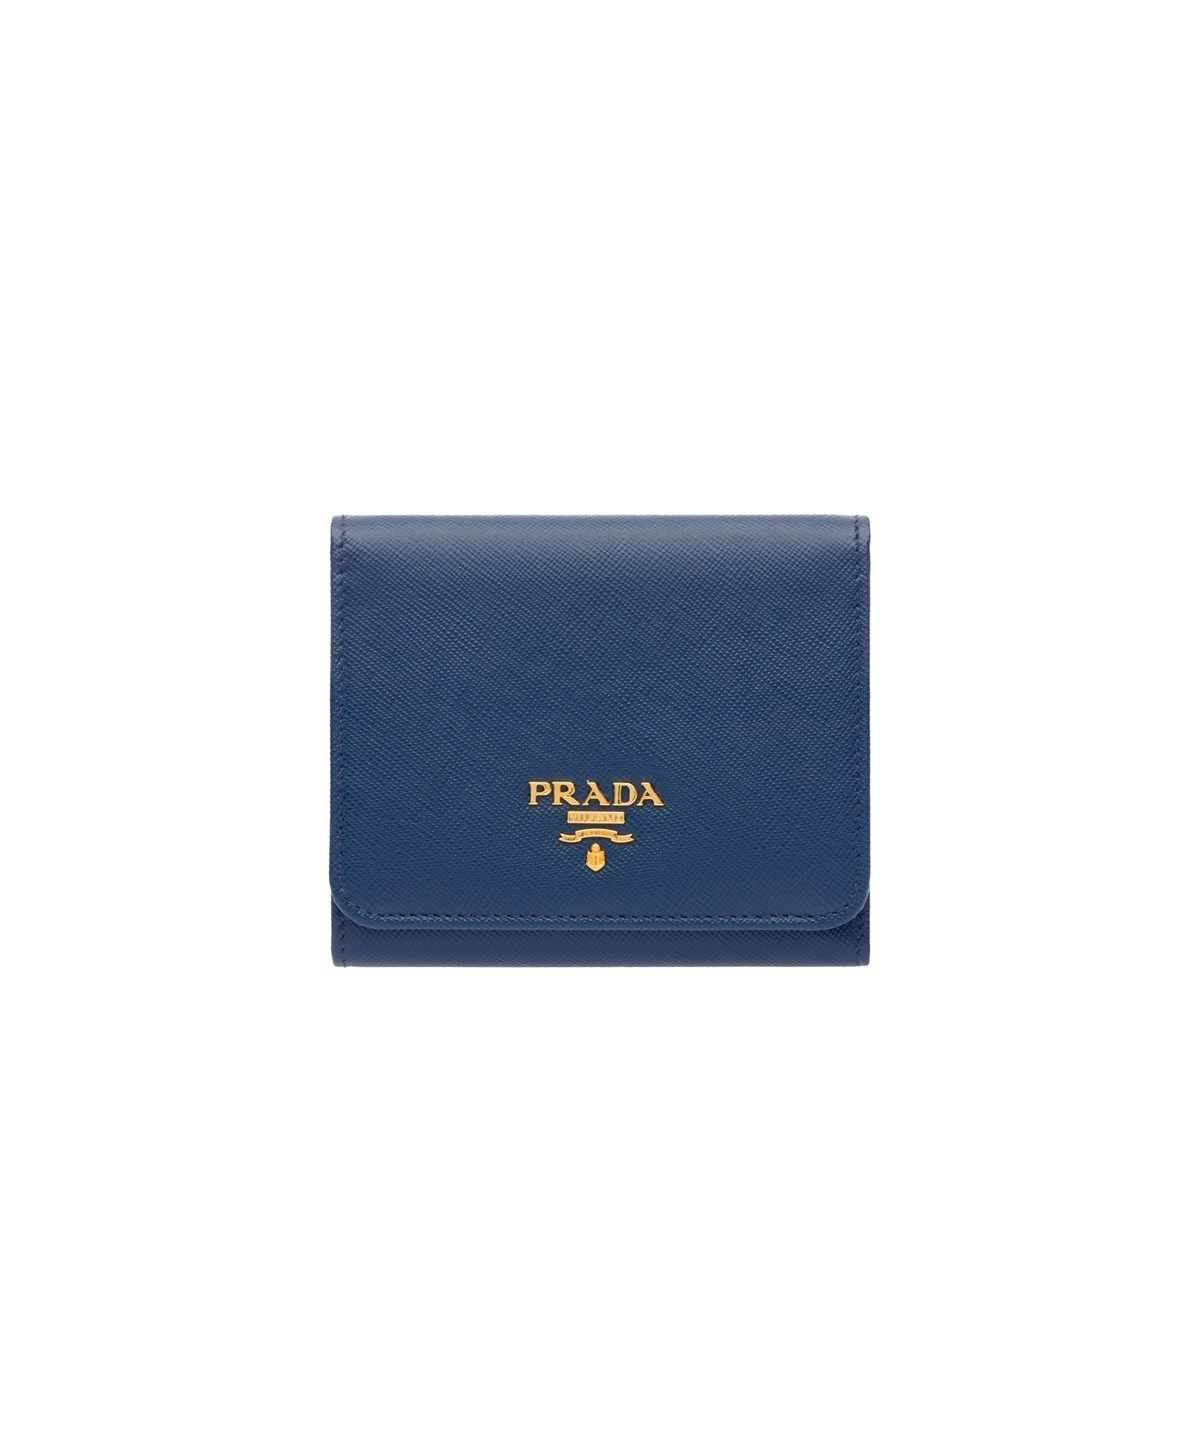 ebe144382fc452 PRADA SAFFIANO LEATHER FLAP WALLET BLUETTE'. #prada #bags #leather #wallet # accessories #